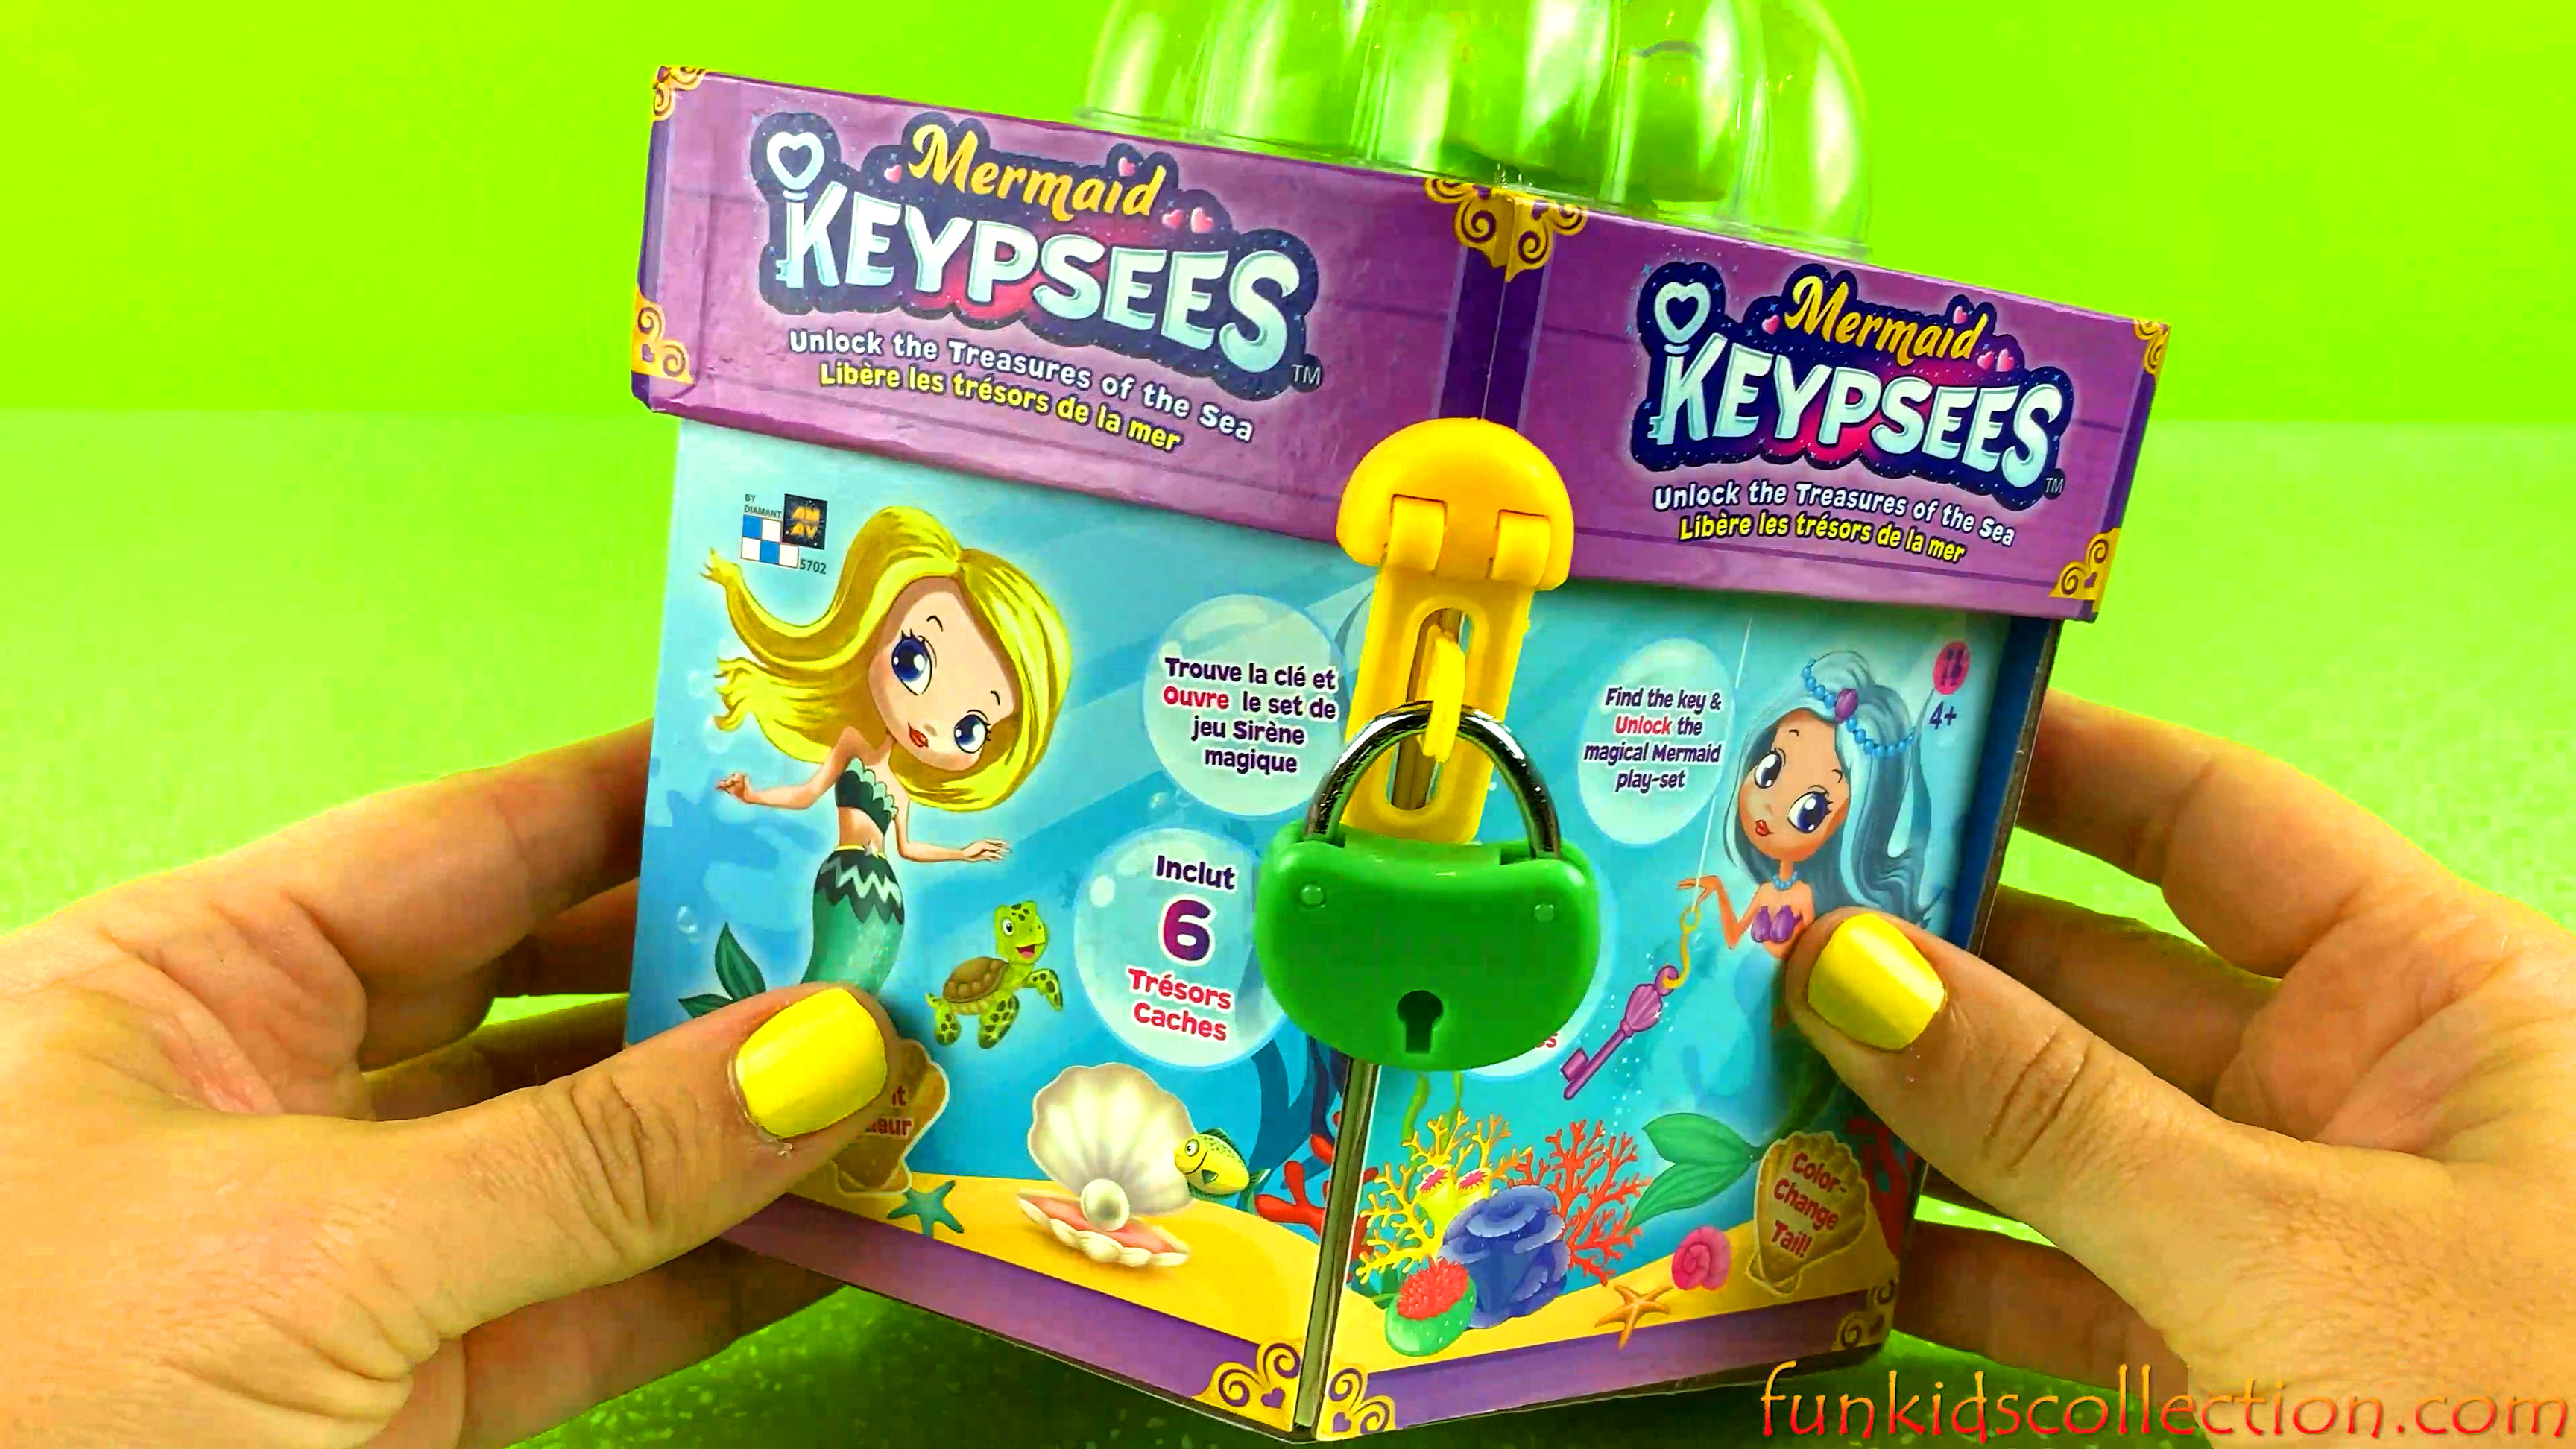 Magical Mermaid Keypsees Playset | Find the Key to Unlock the Treasures of the Sea | EBD Toys